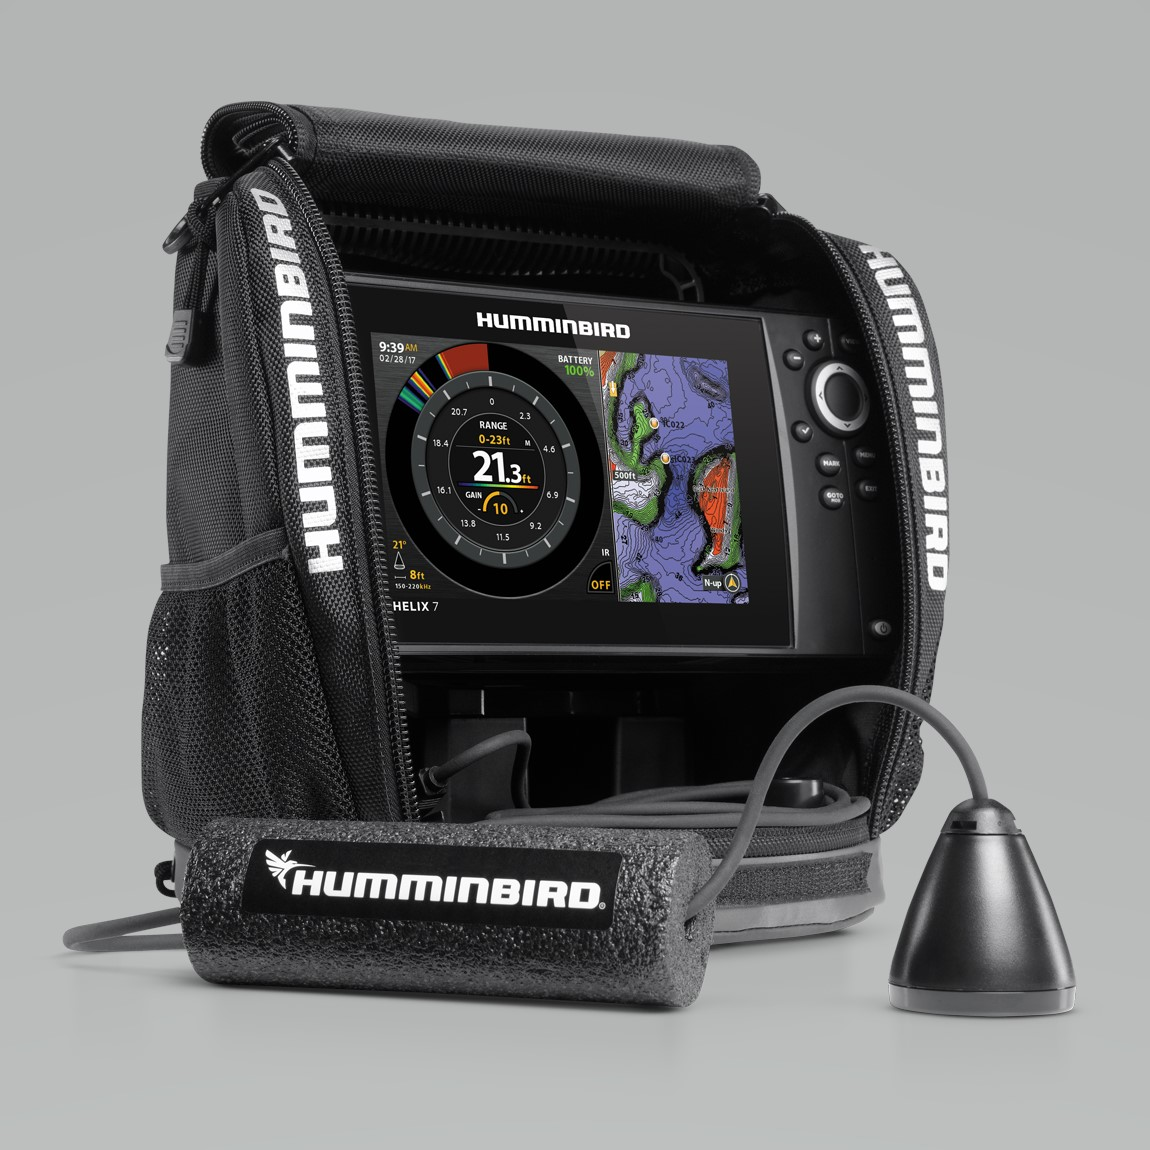 Best Ice Fishfinders - Buying Guide and Reviews